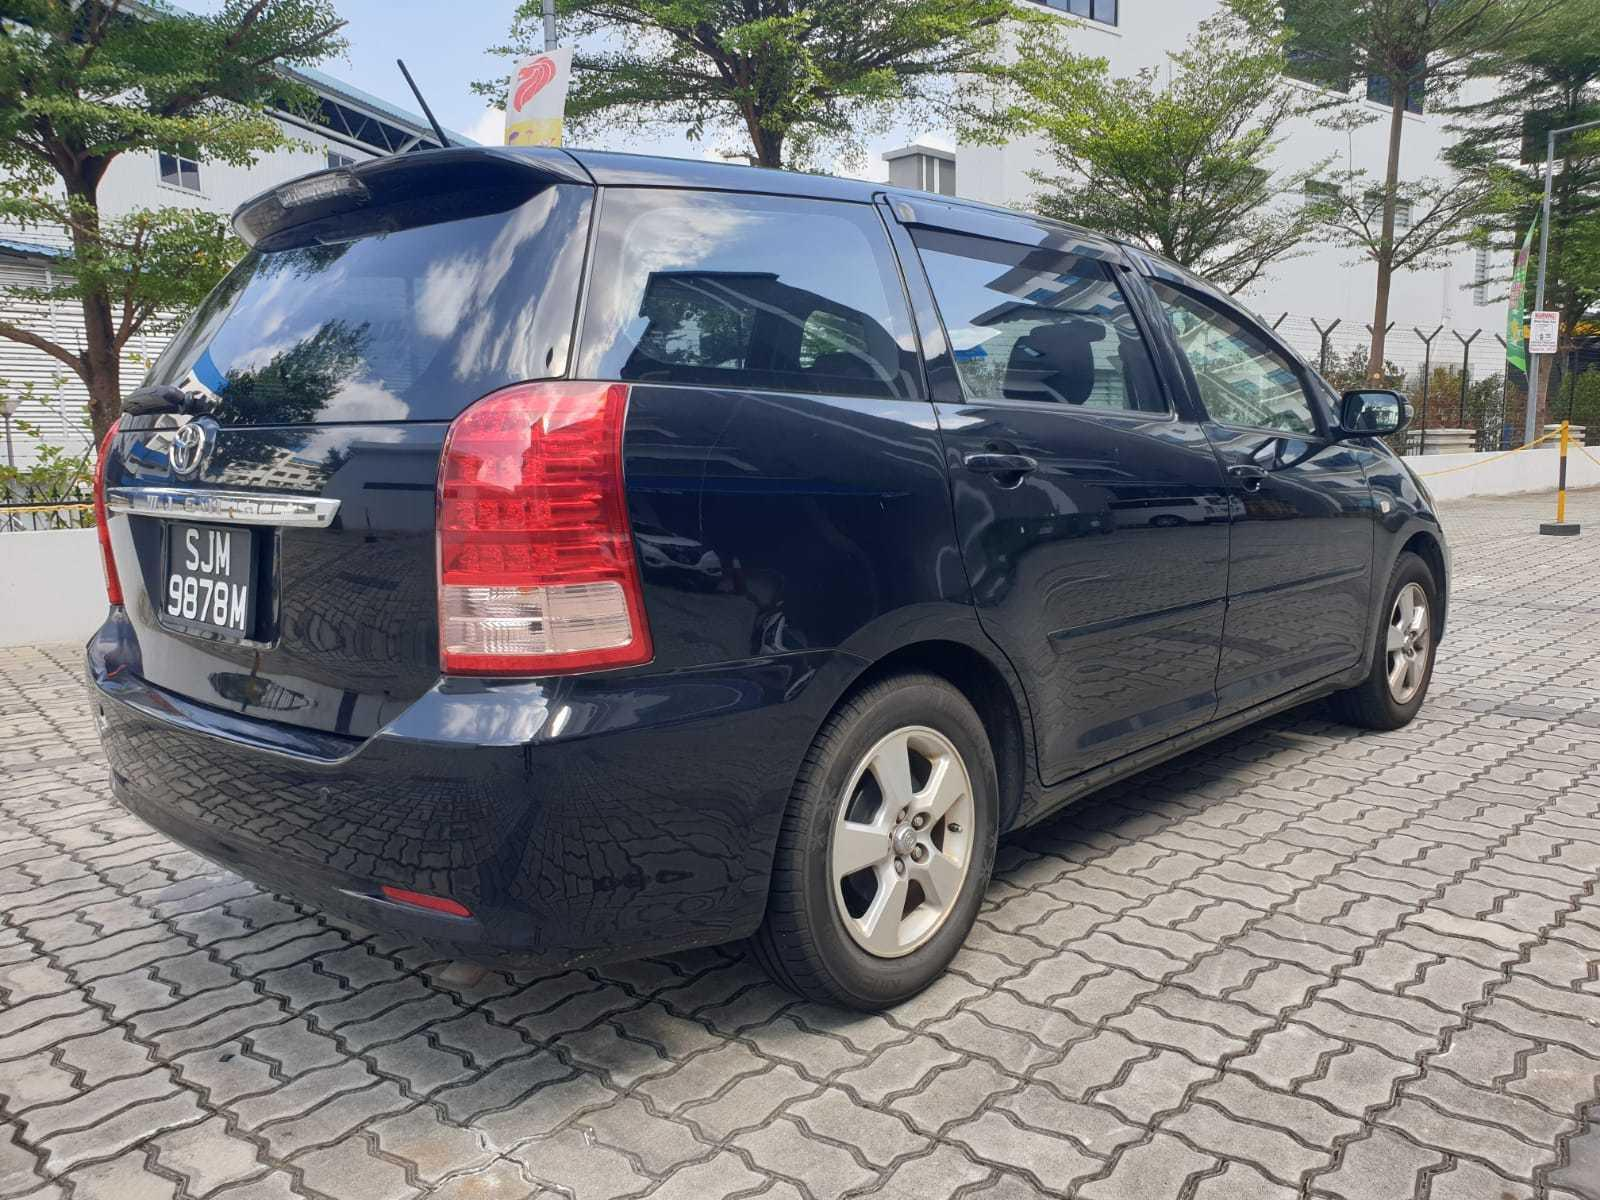 Toyota Wish 1.8A - Lowest rental rates, with many choices to choose from!